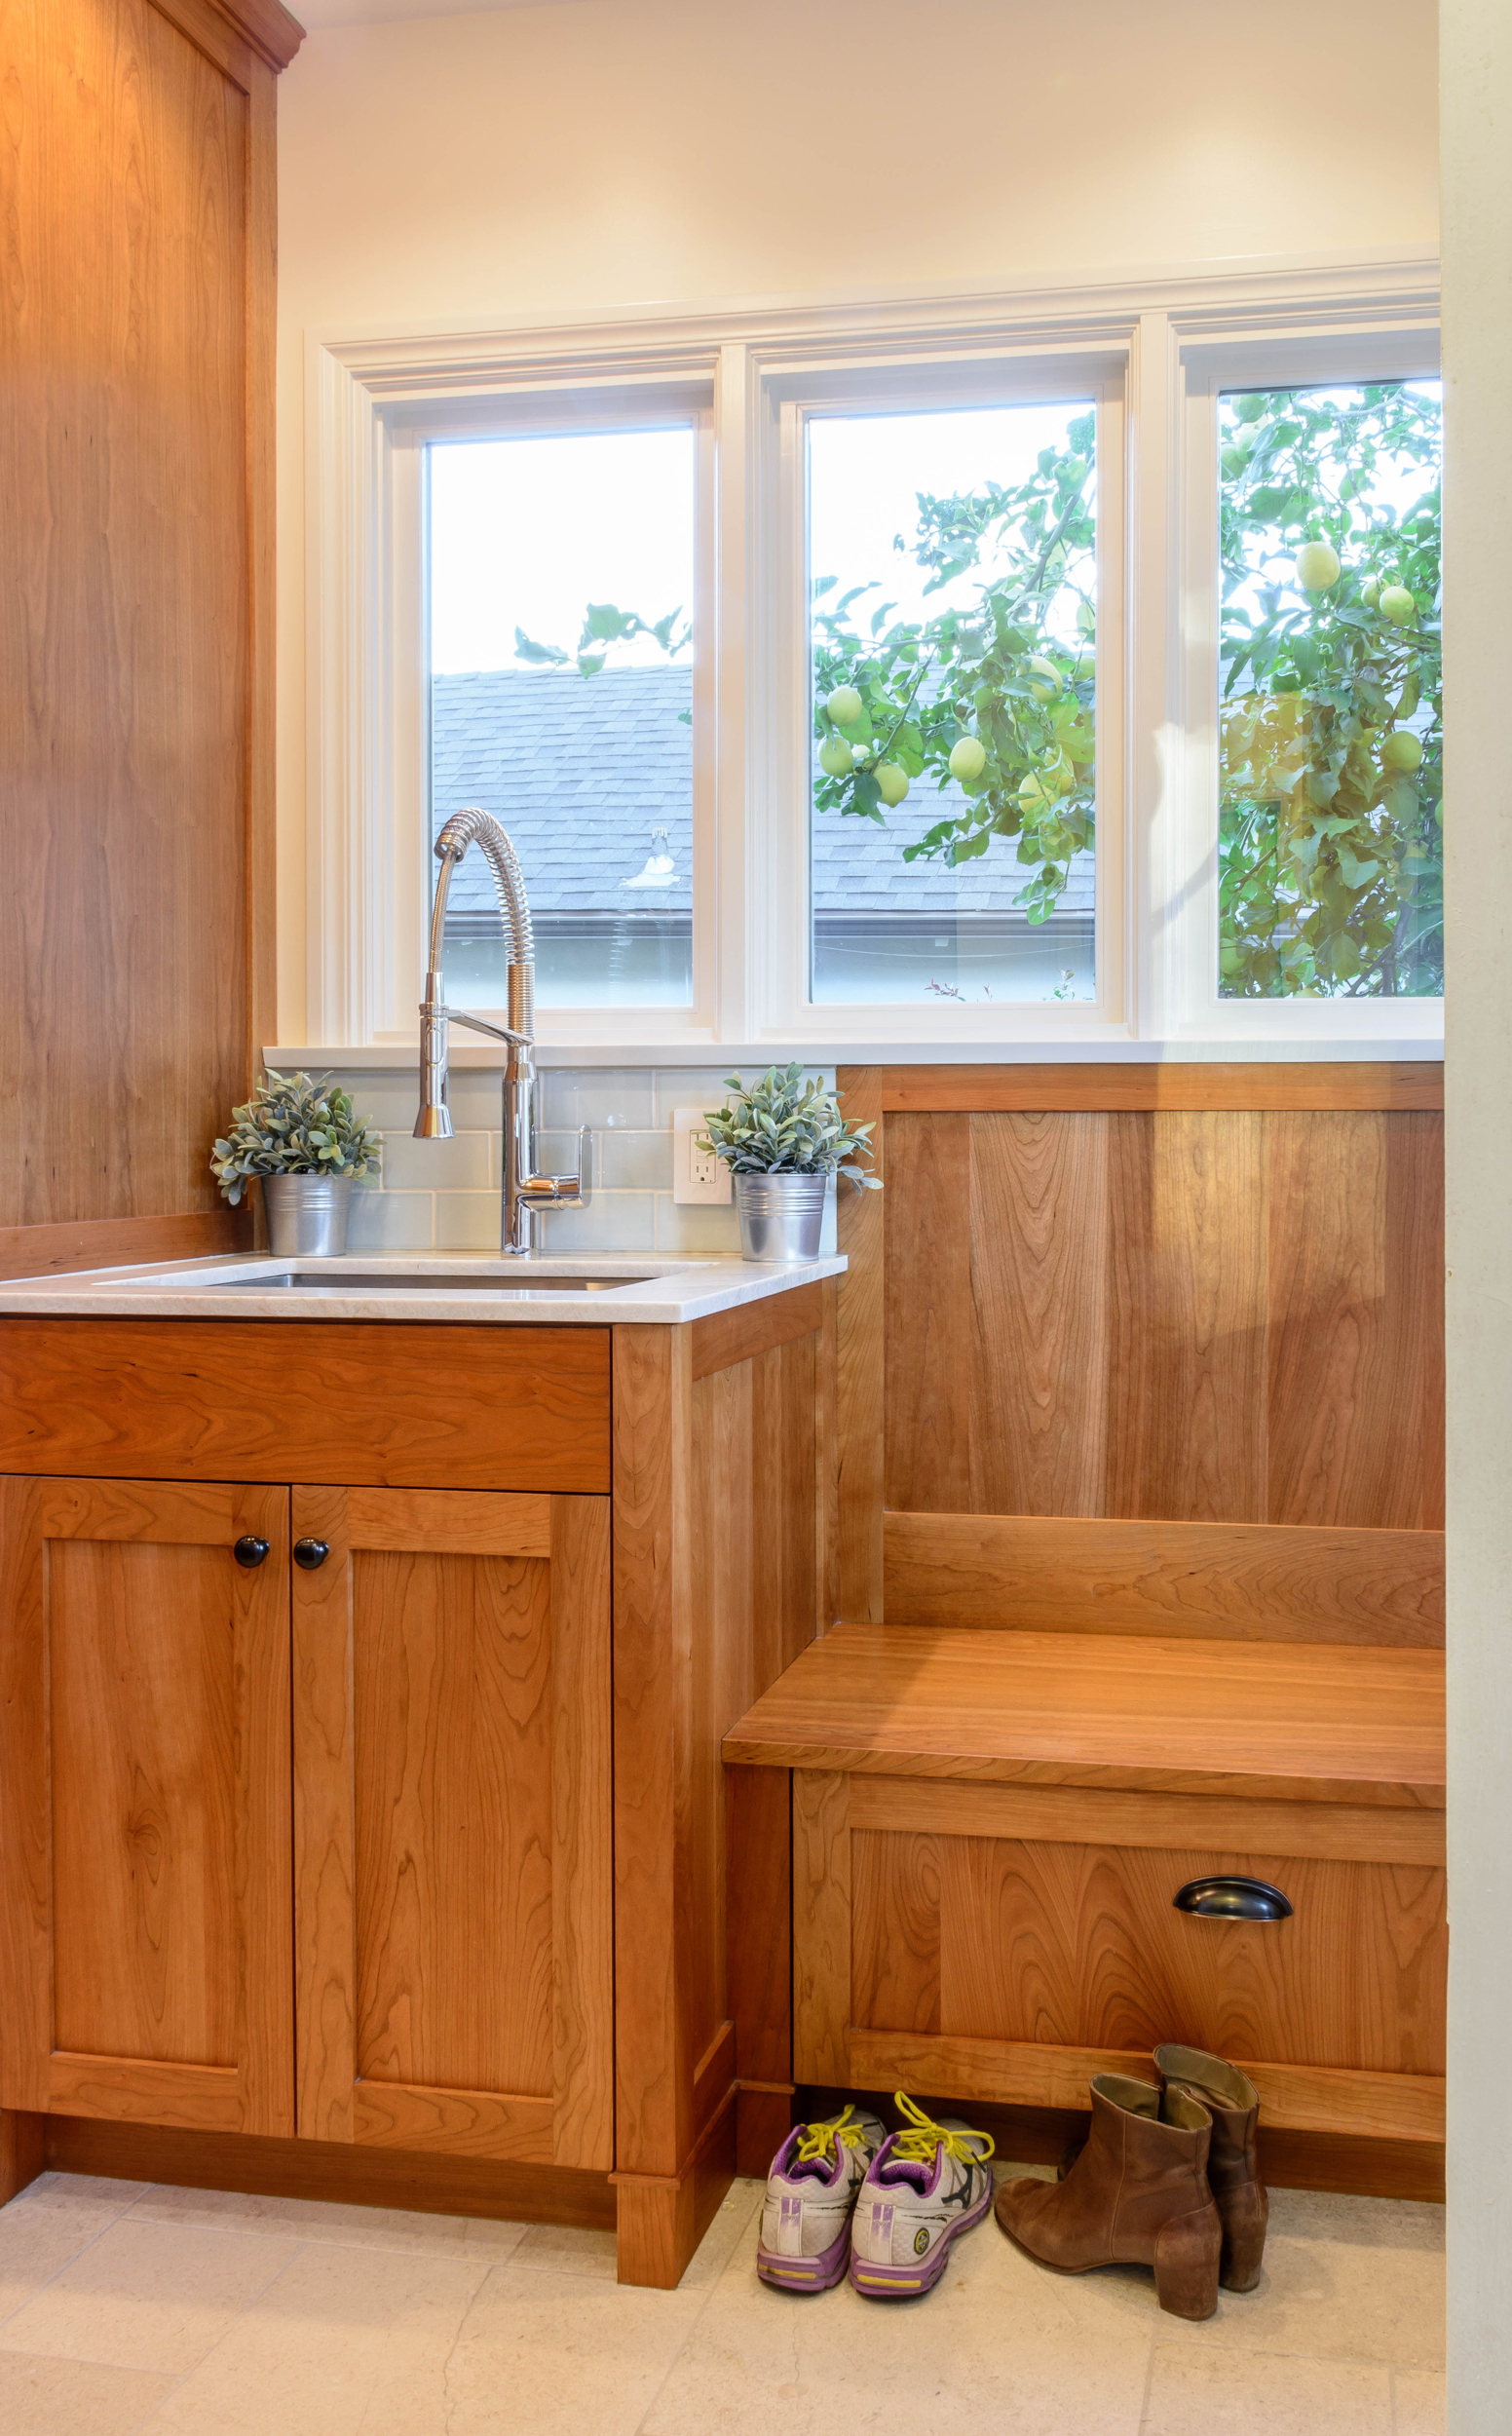 Mudroom with laundry sink and bench